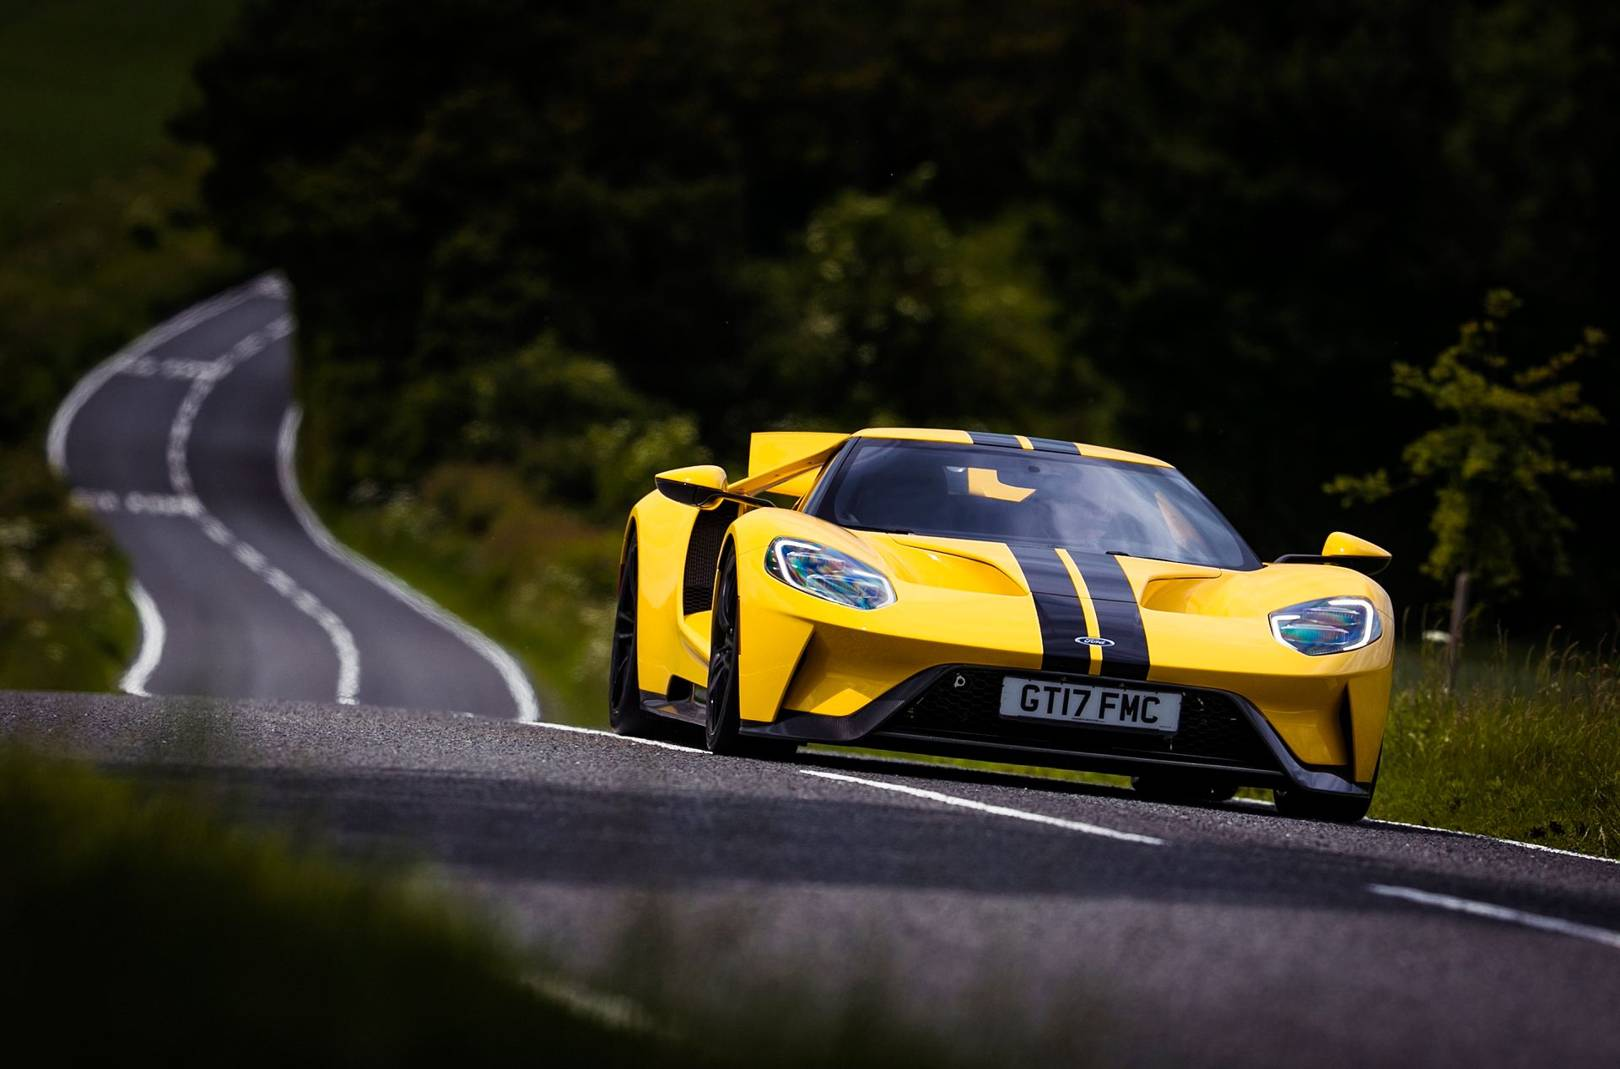 Ford ford gt images : Ford GT 2017: driven in Britain for the first time | British GQ